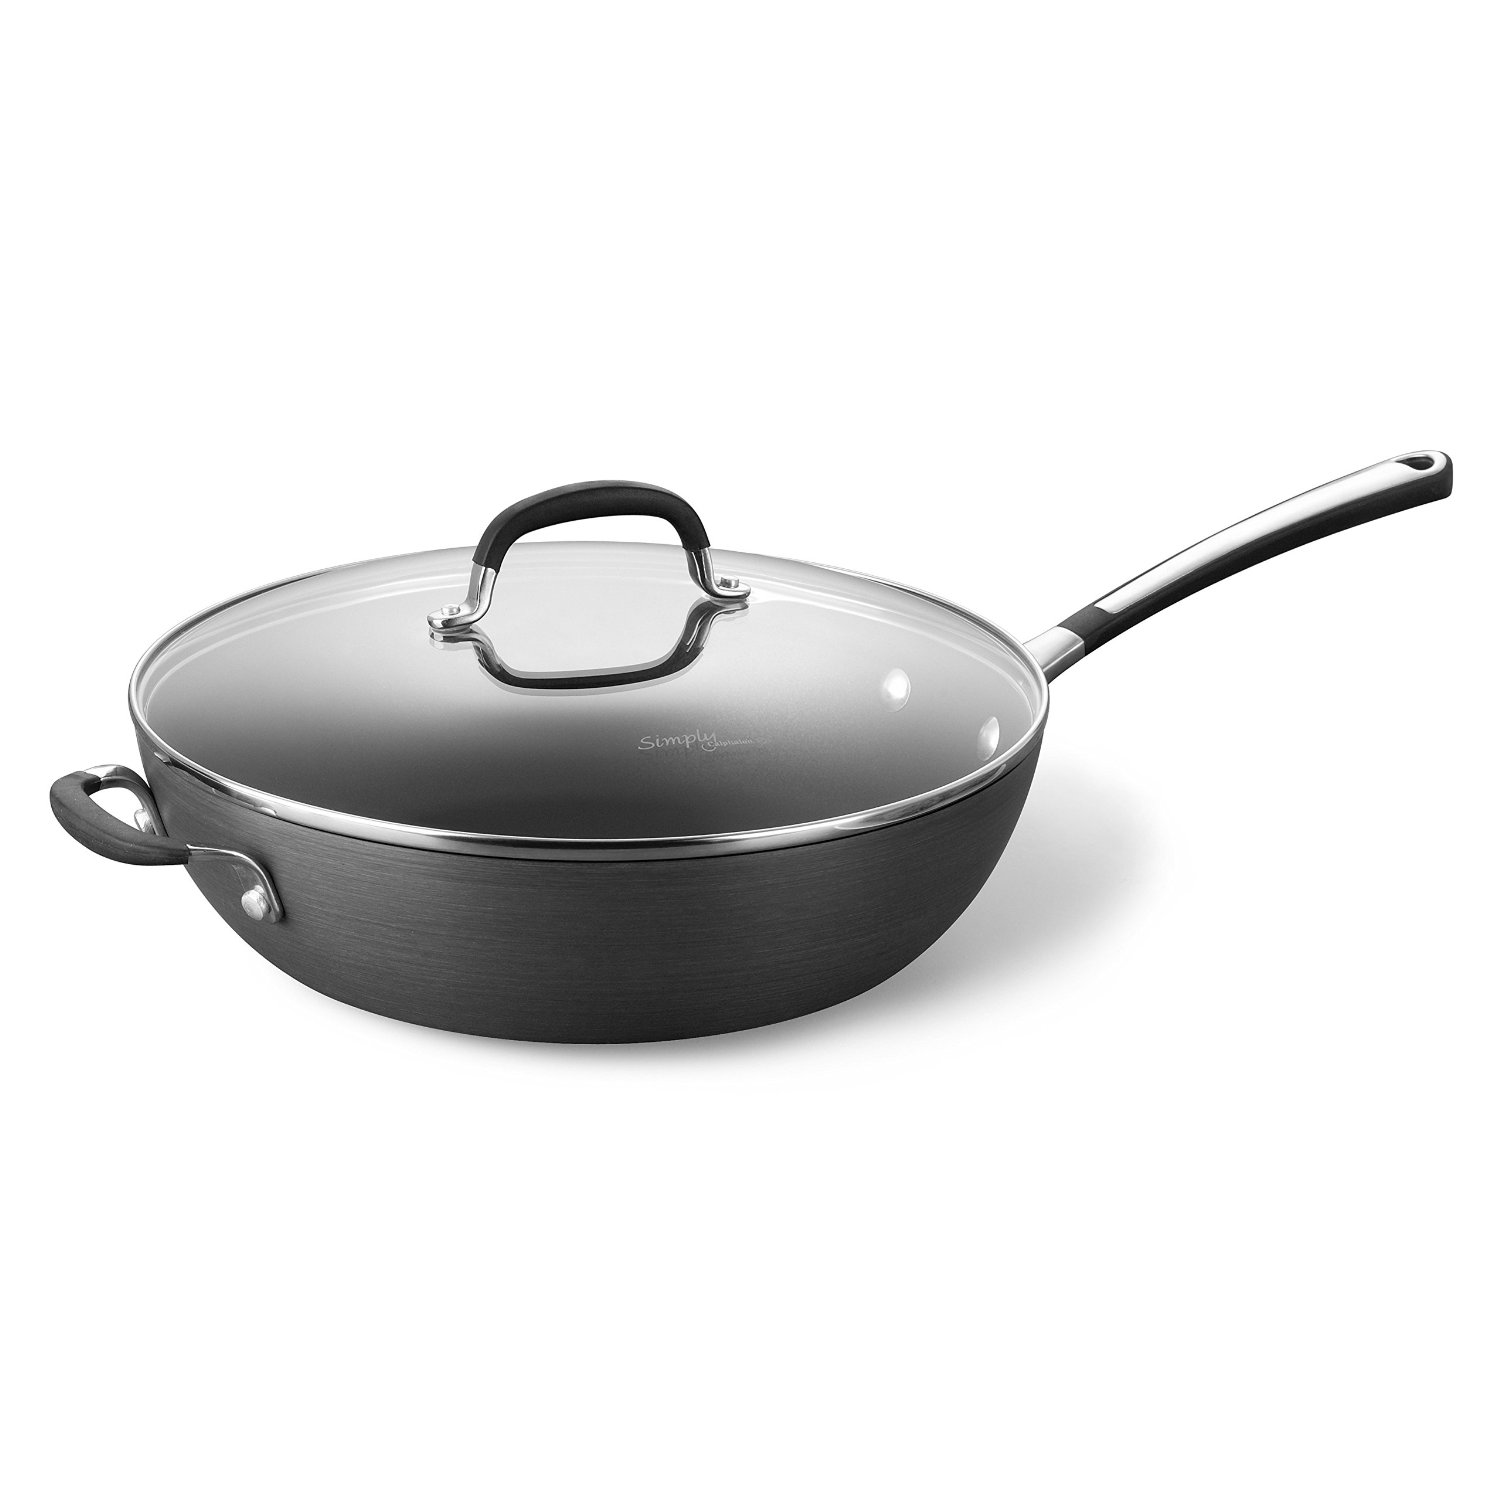 T Fal C92102 Initiatives Ceramic Nonstick Ptfe Pfoa